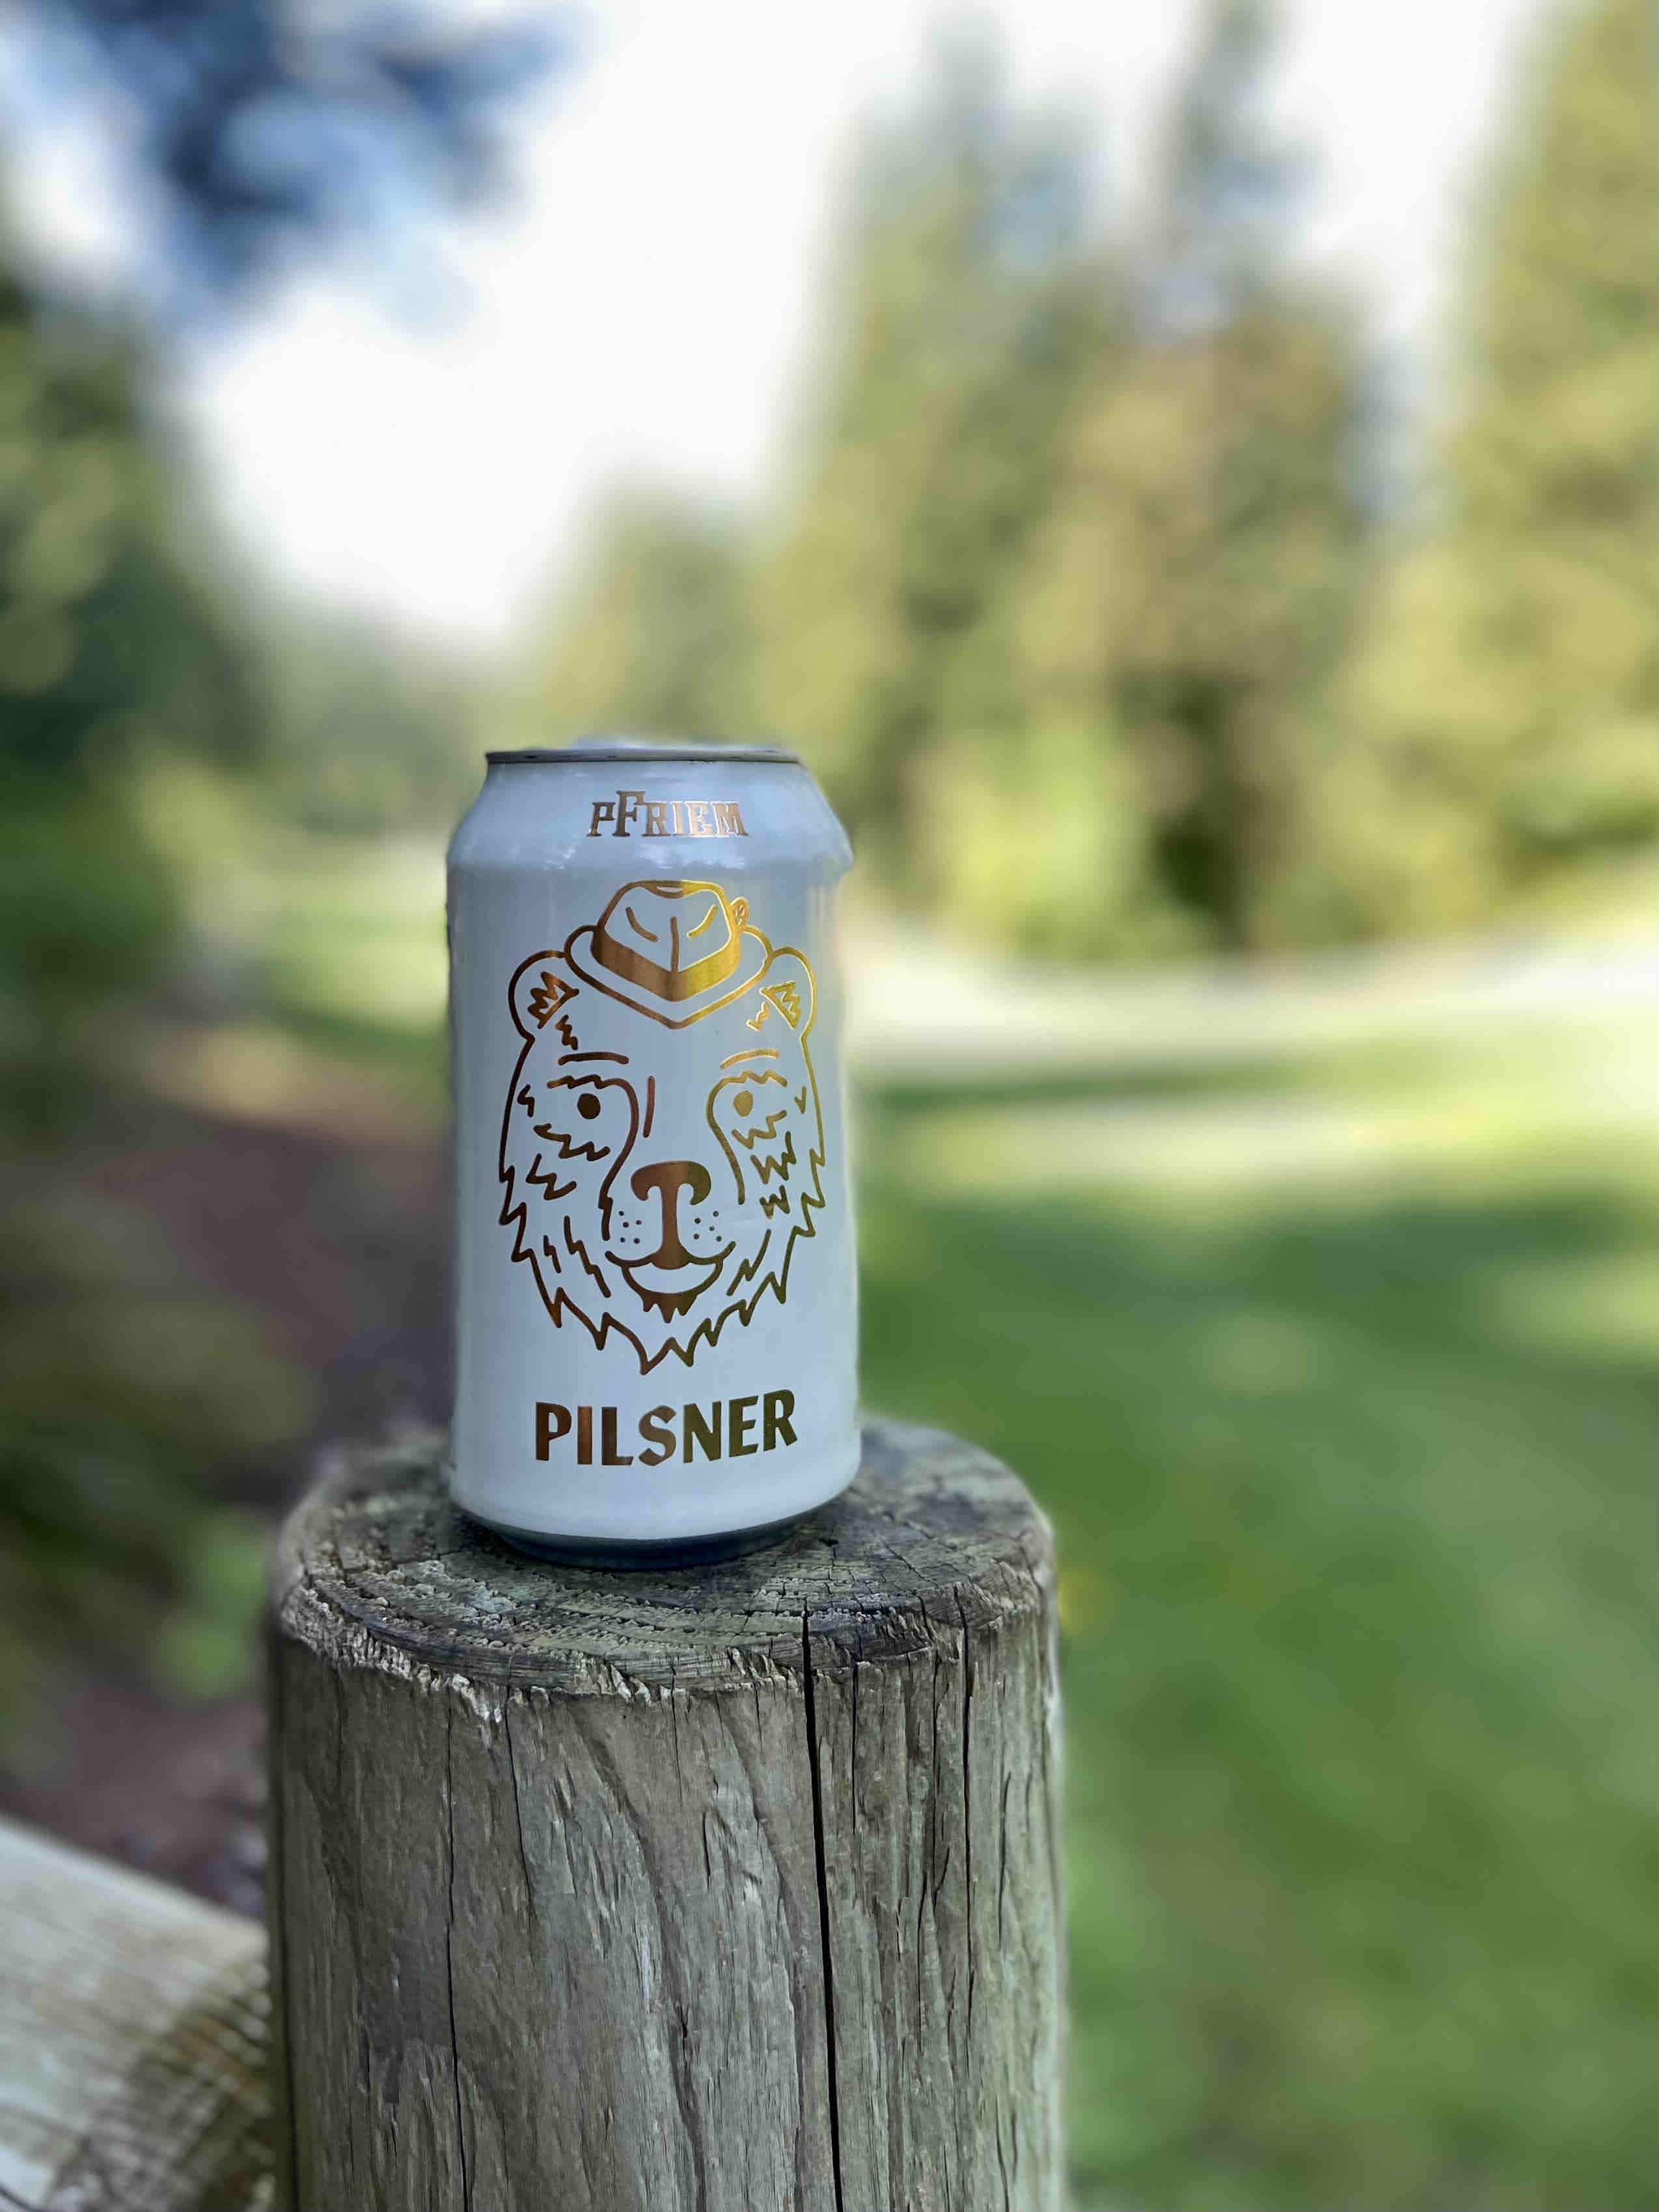 The Backyard has a decent selection of craft beers and ready-to-drink canned cocktails for your golf game at Skamania Lodge.